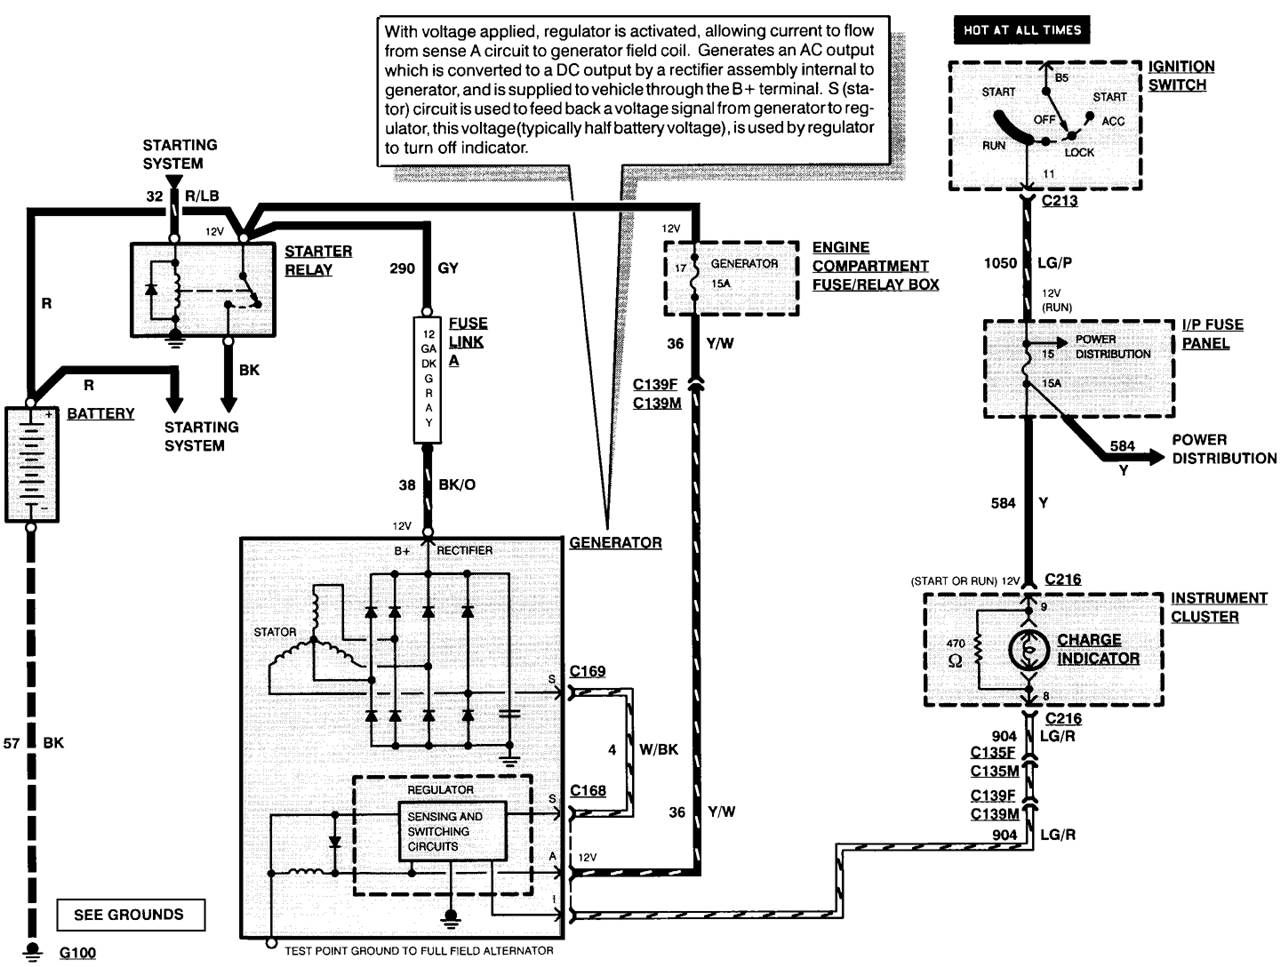 ford alternator wiring diagram internal regulator jpg ford alternator wiring diagrams carsut understand cars and ford alternator wiring diagram internal regulator